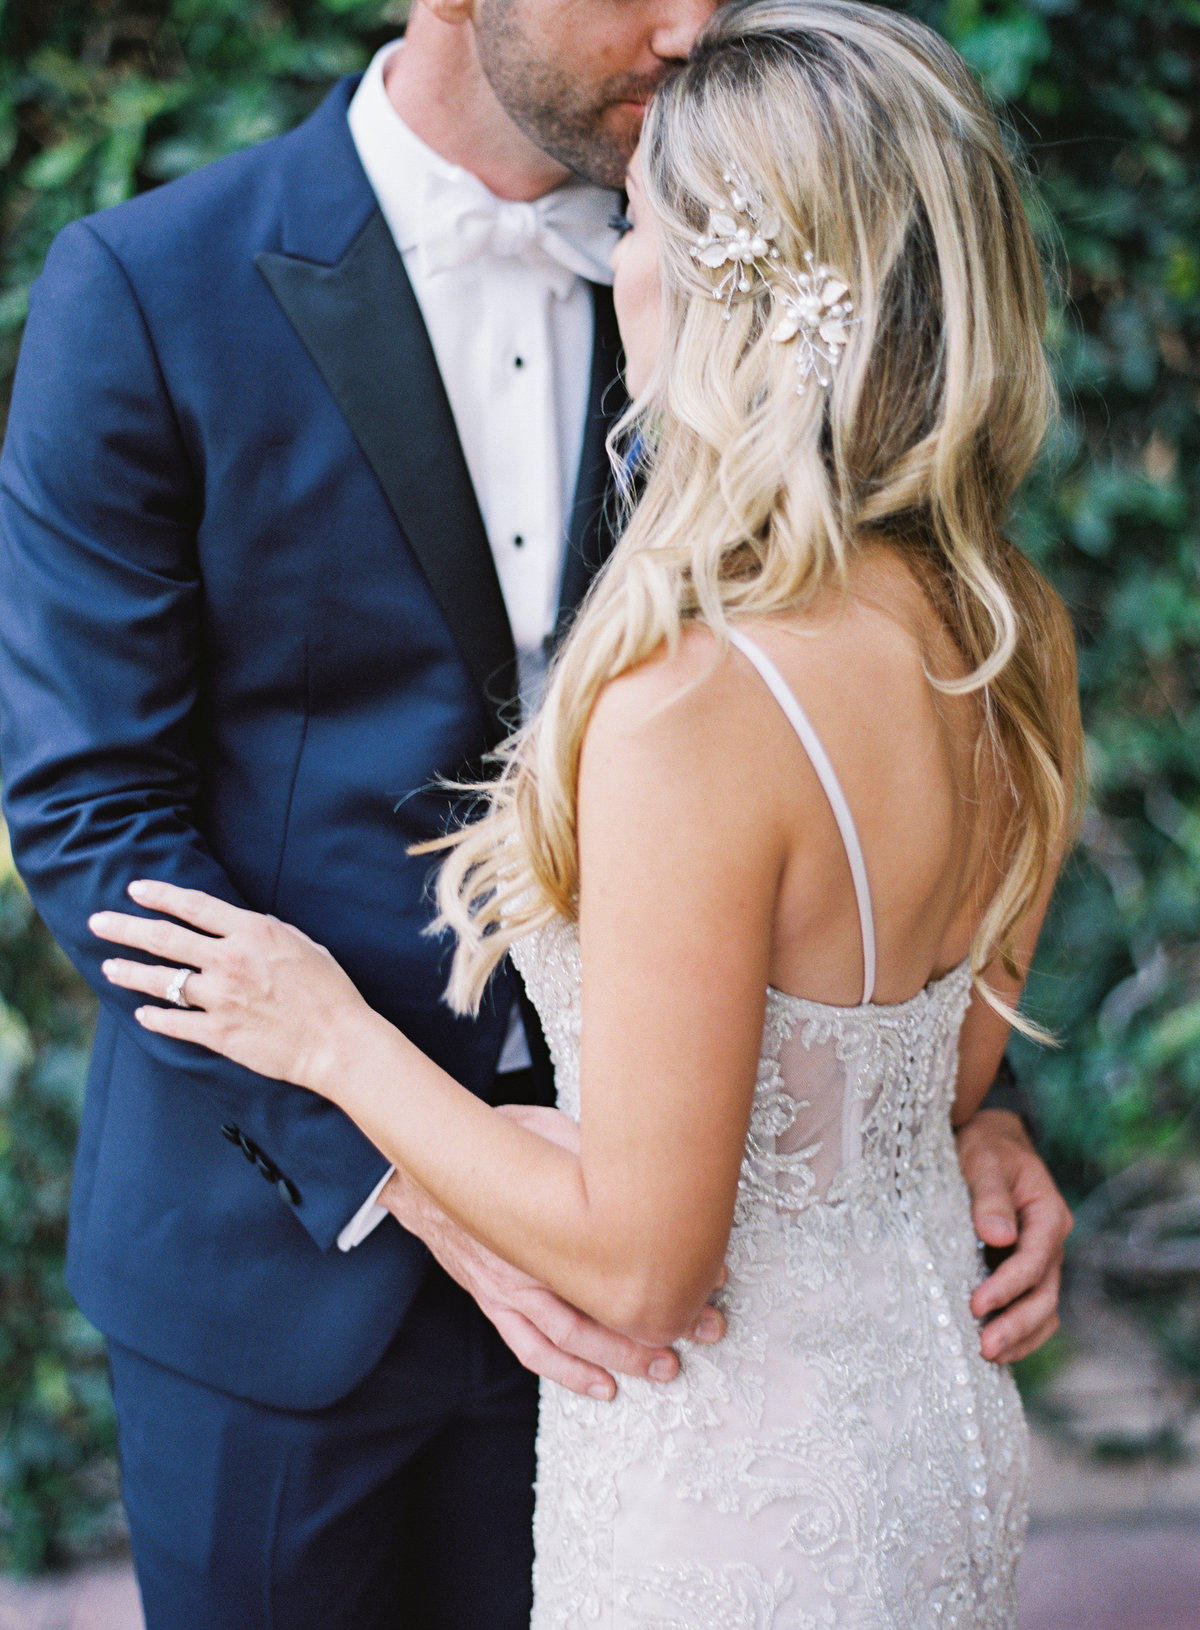 Arizona Biltmore Wedding - Mary Claire Photography-20